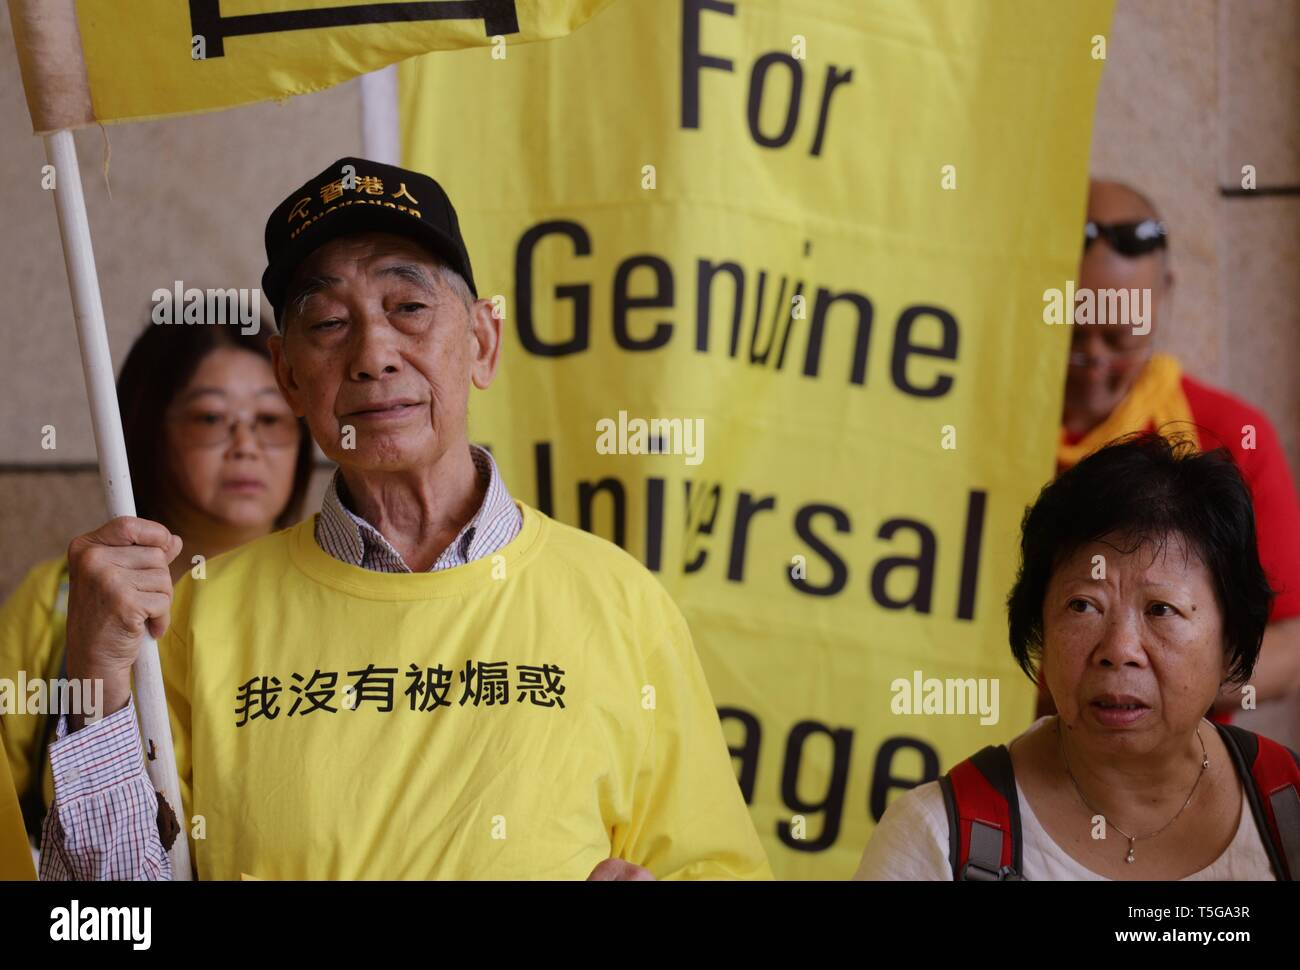 Hong Kong. 24th Apr, 2019. Supporters of the UMBRELLA MOVEMENT gather outside West Kowloon Court this morning to show their support for the 9 defendants ( leaders of the 2014 Umbrella Movement ) this morning.April-24, 2019 Hong Kong.ZUMA/Liau Chung-ren Credit: Liau Chung-ren/ZUMA Wire/Alamy Live News - Stock Image